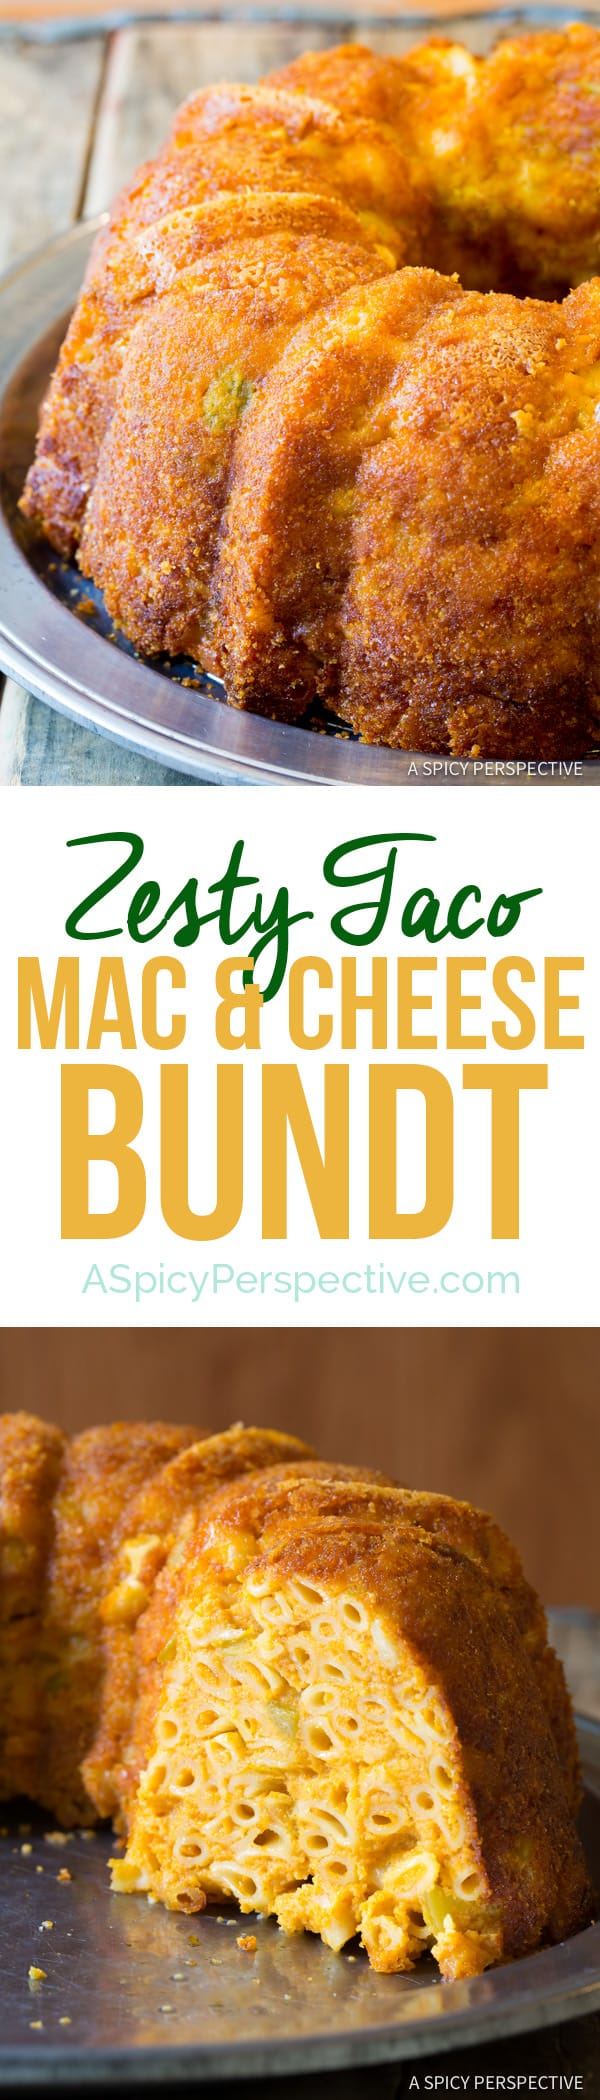 Best Taco Mac and Cheese Bundt Recipe | ASpicyPerspective.com